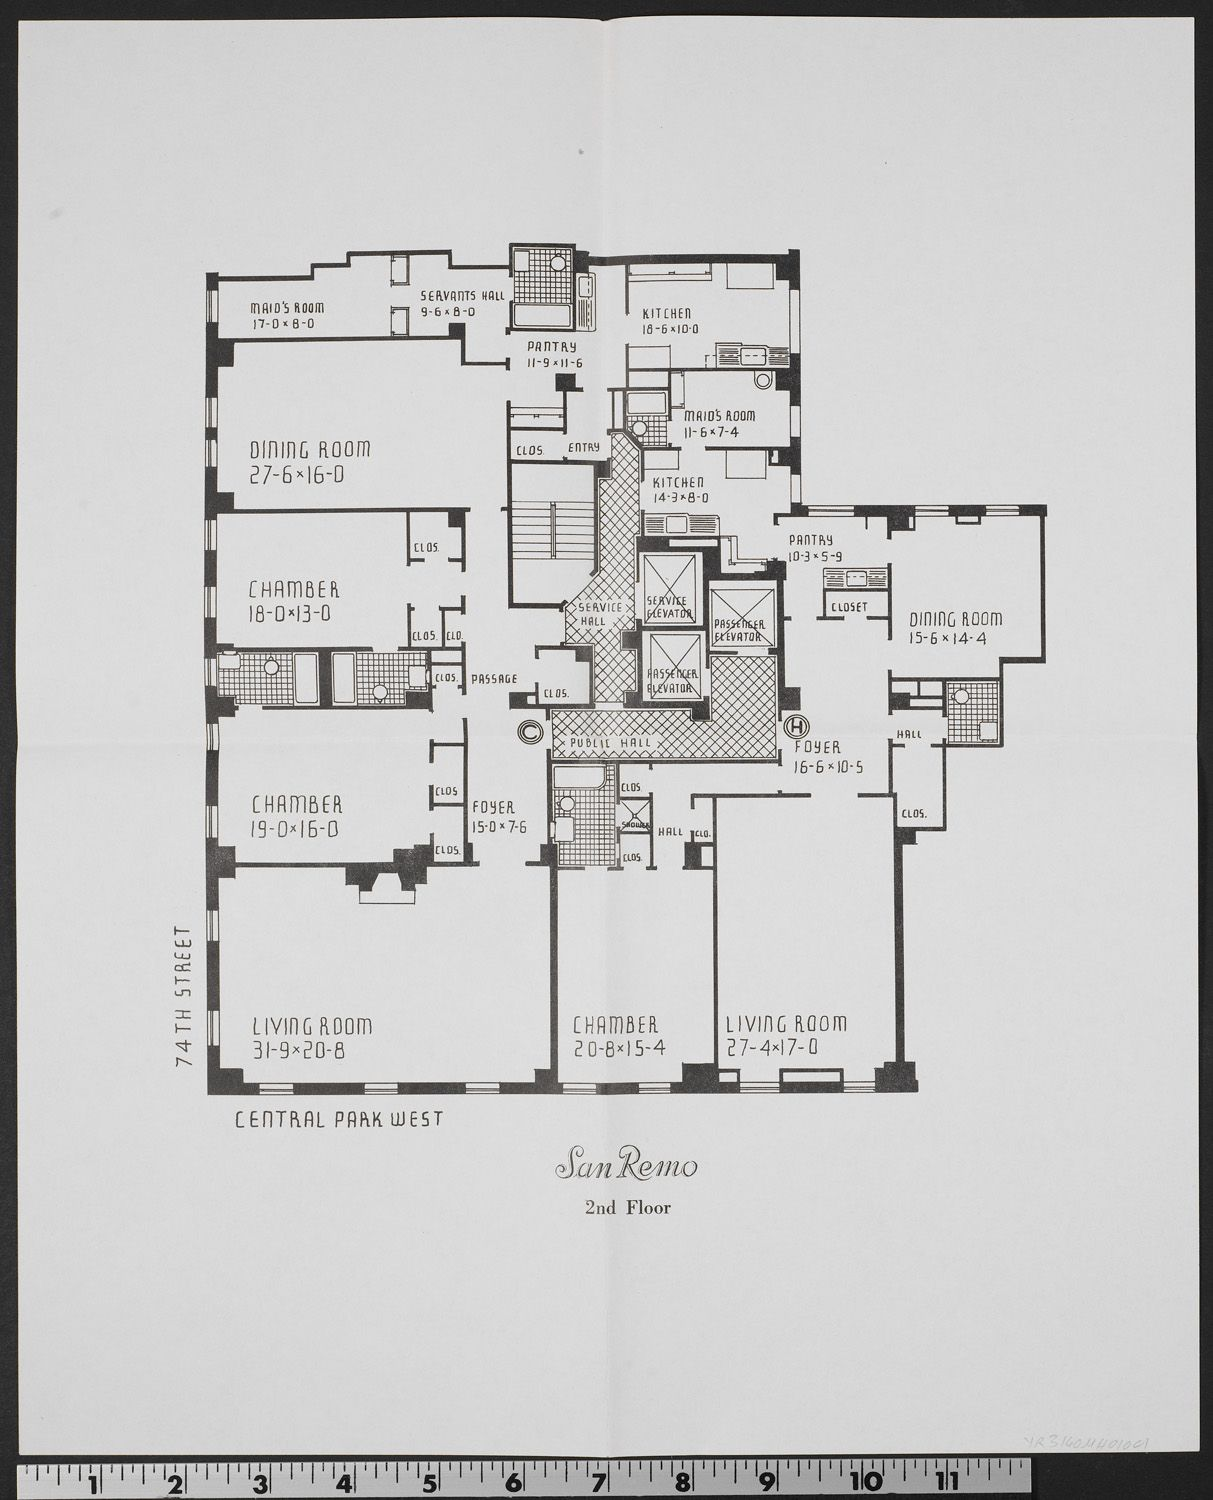 Floor plans for the 1930 San Remo Apartments at 145